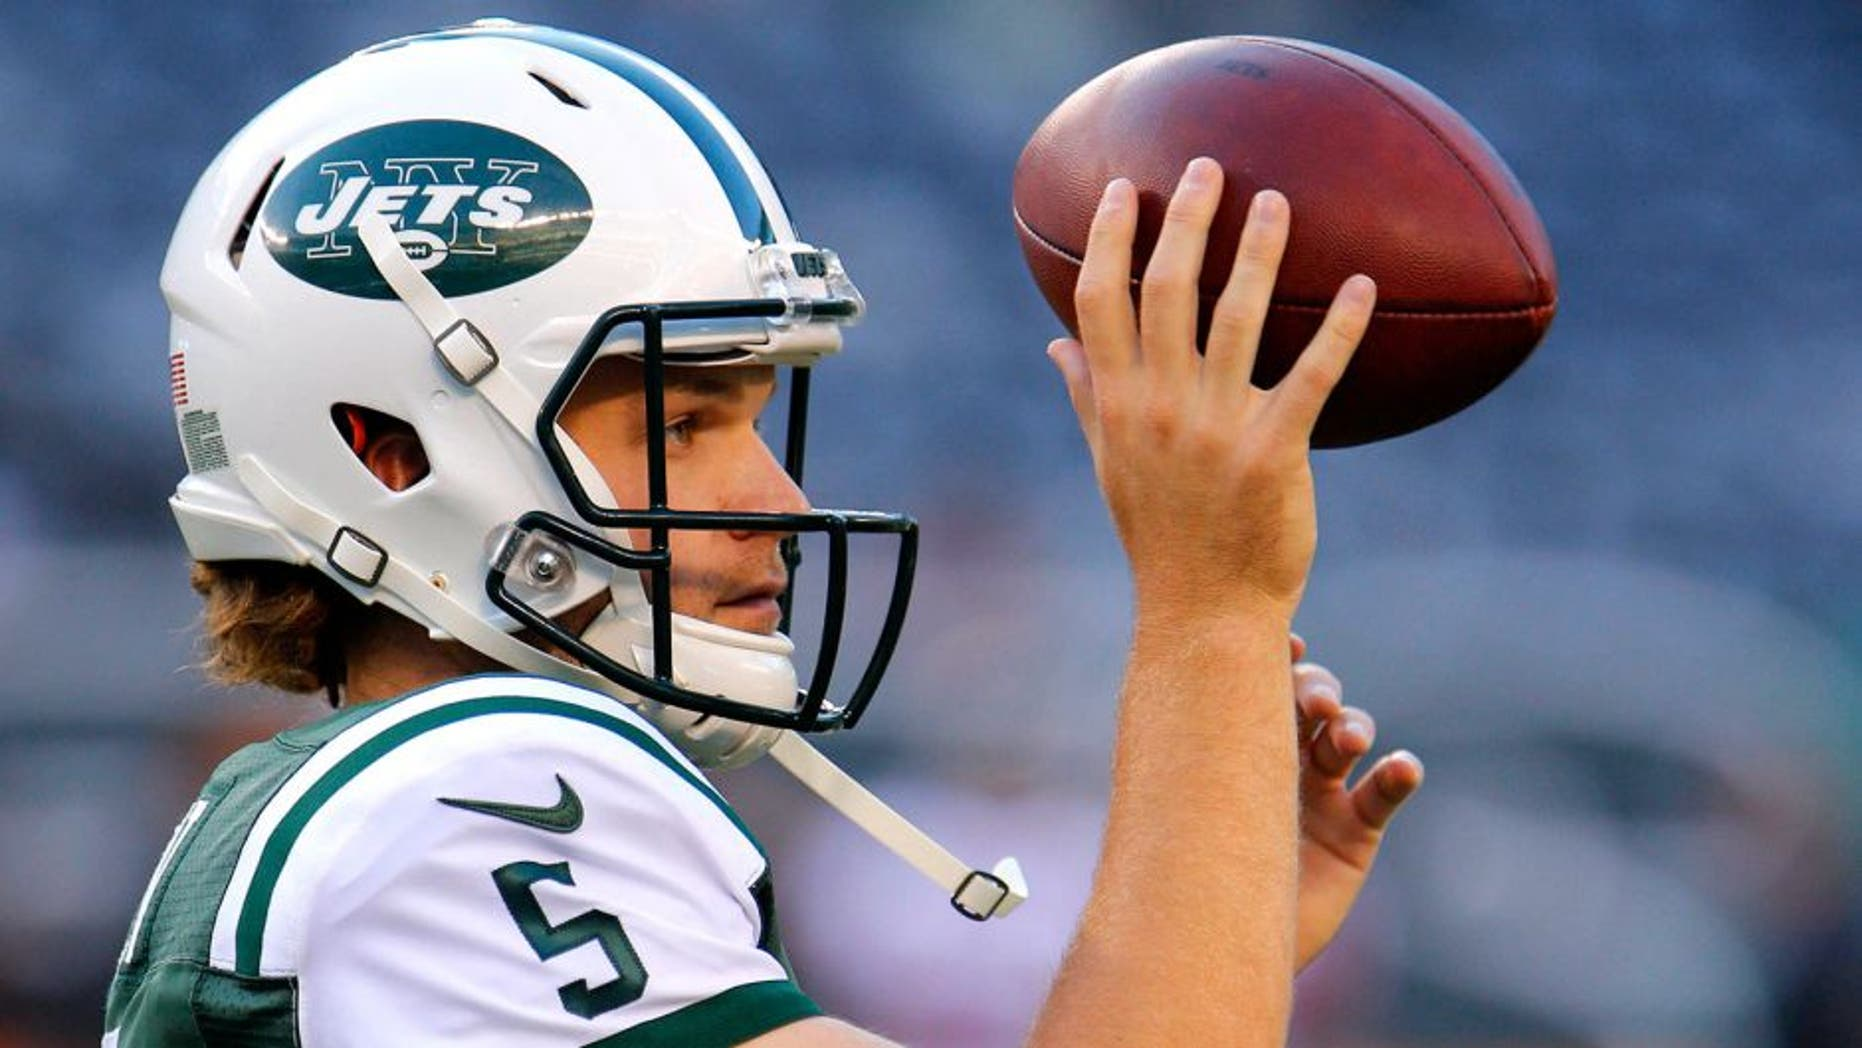 Aug 21, 2015; East Rutherford, NJ, USA; New York Jets quarterback Matt Flynn (5) during warm up before game against the Atlanta Falcons at MetLife Stadium. Mandatory Credit: Noah K. Murray-USA TODAY Sports